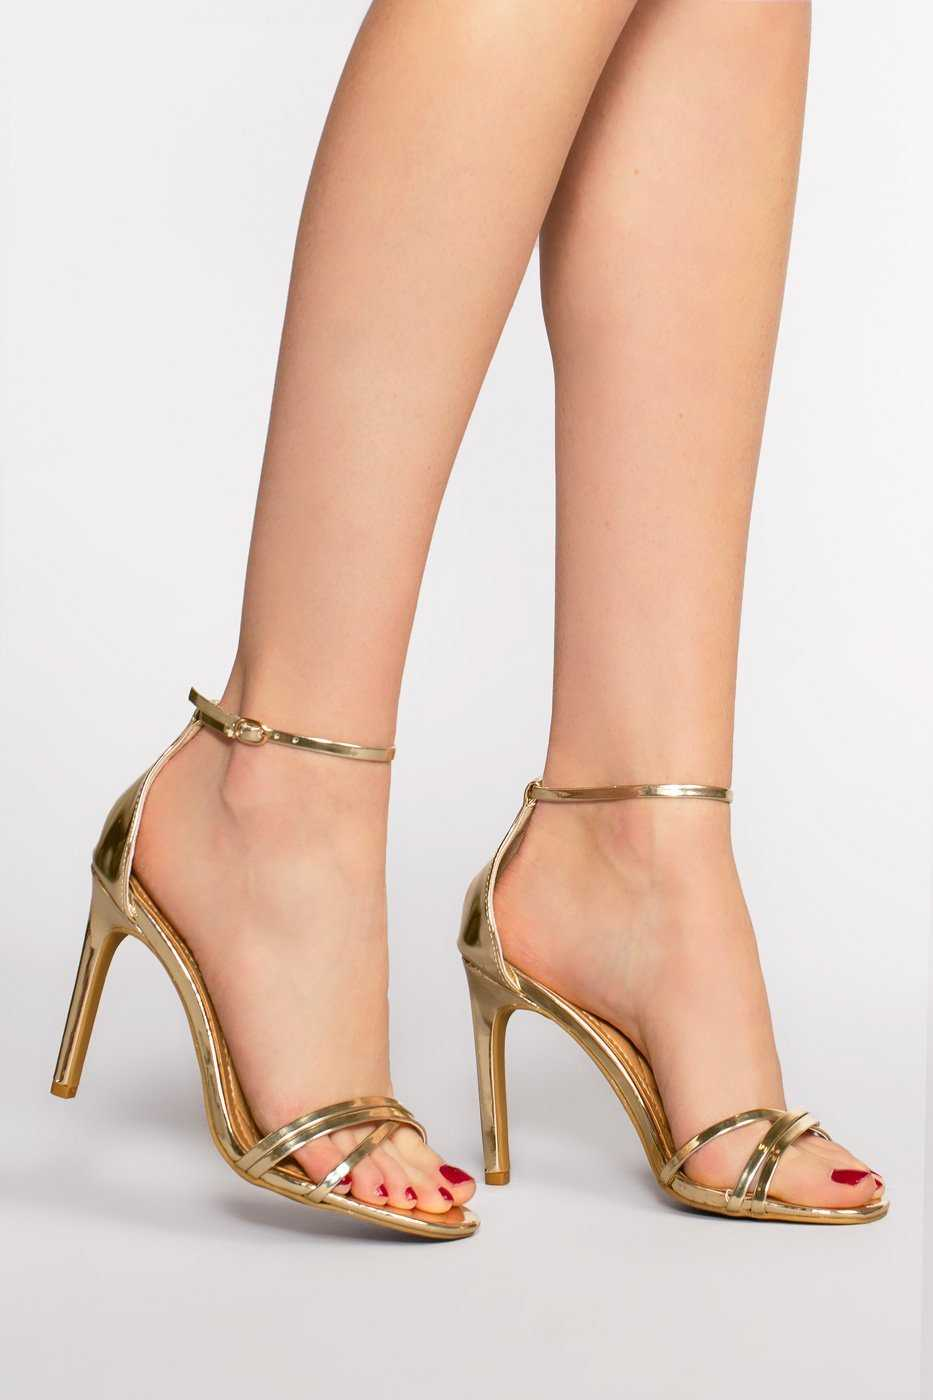 Shoes - Timeless Heels - Metallic Gold